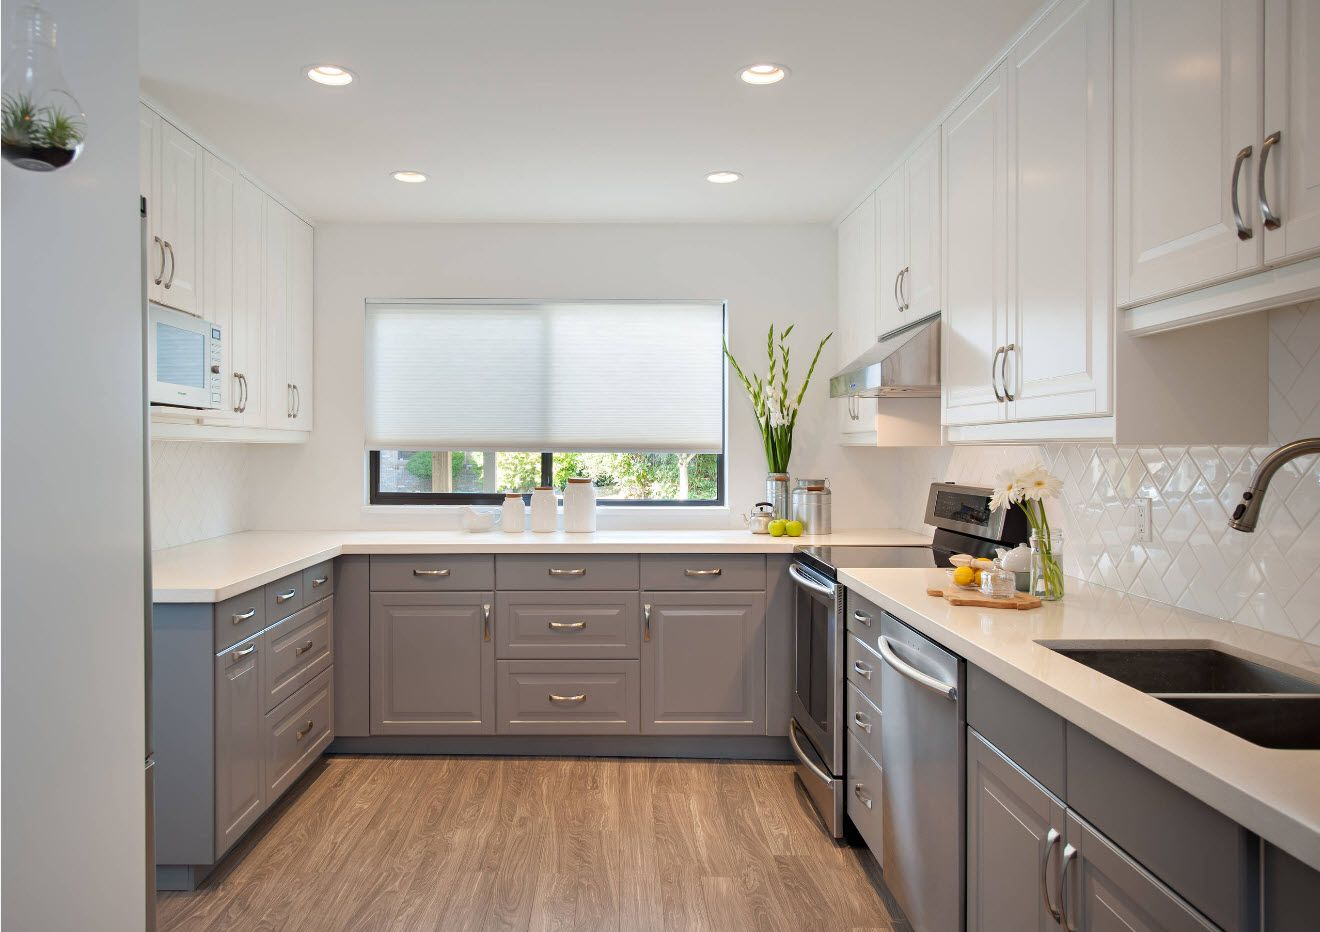 Best White Upper Cabinets And White Countertops With Grey Base 400 x 300